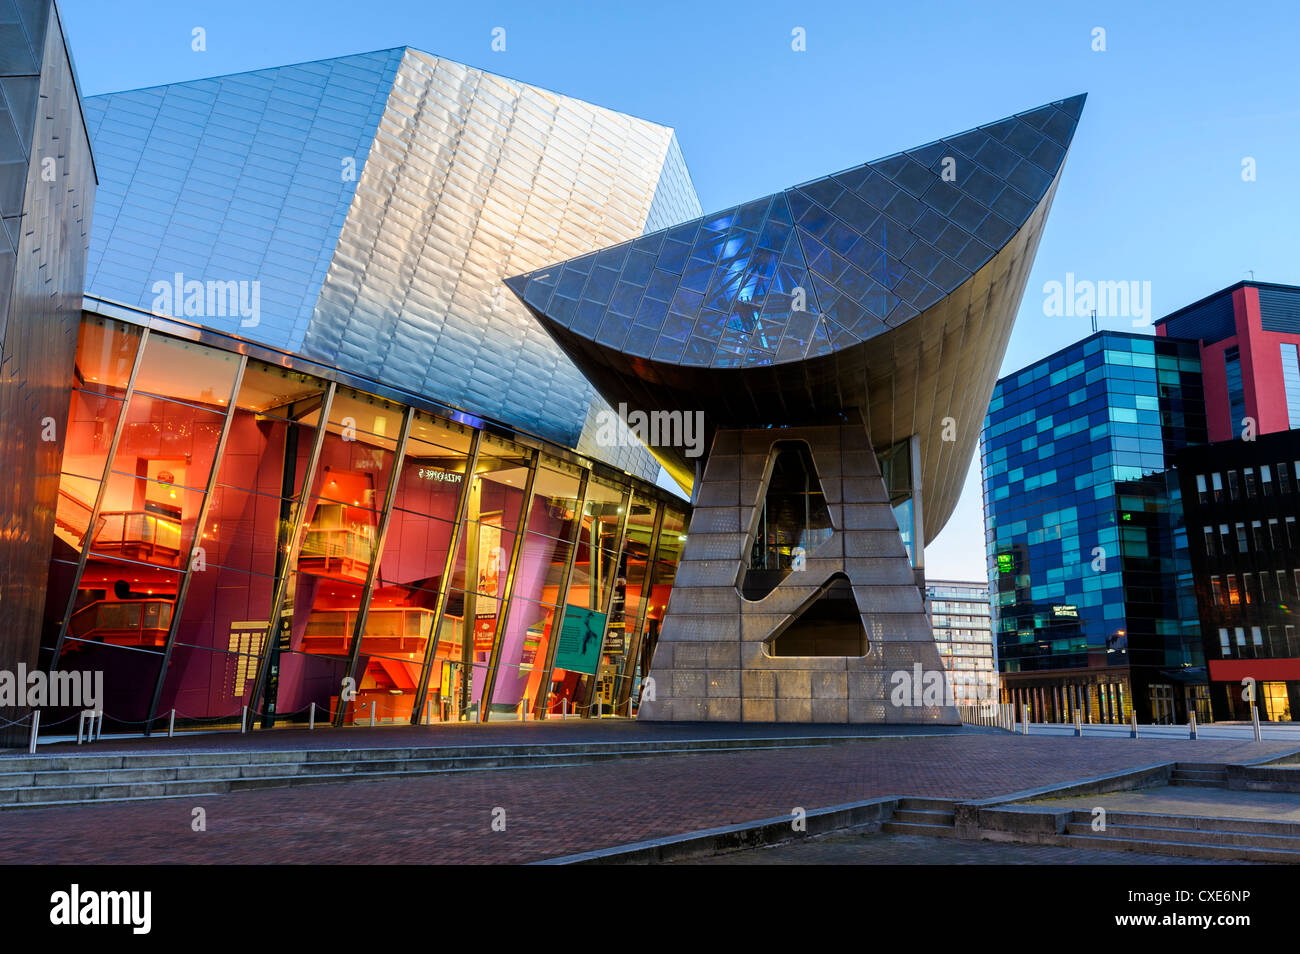 The Lowry Centre theatre at dawn, Salford Quays, Manchester, Greater Manchester, England, United Kingdom, Europe - Stock Image